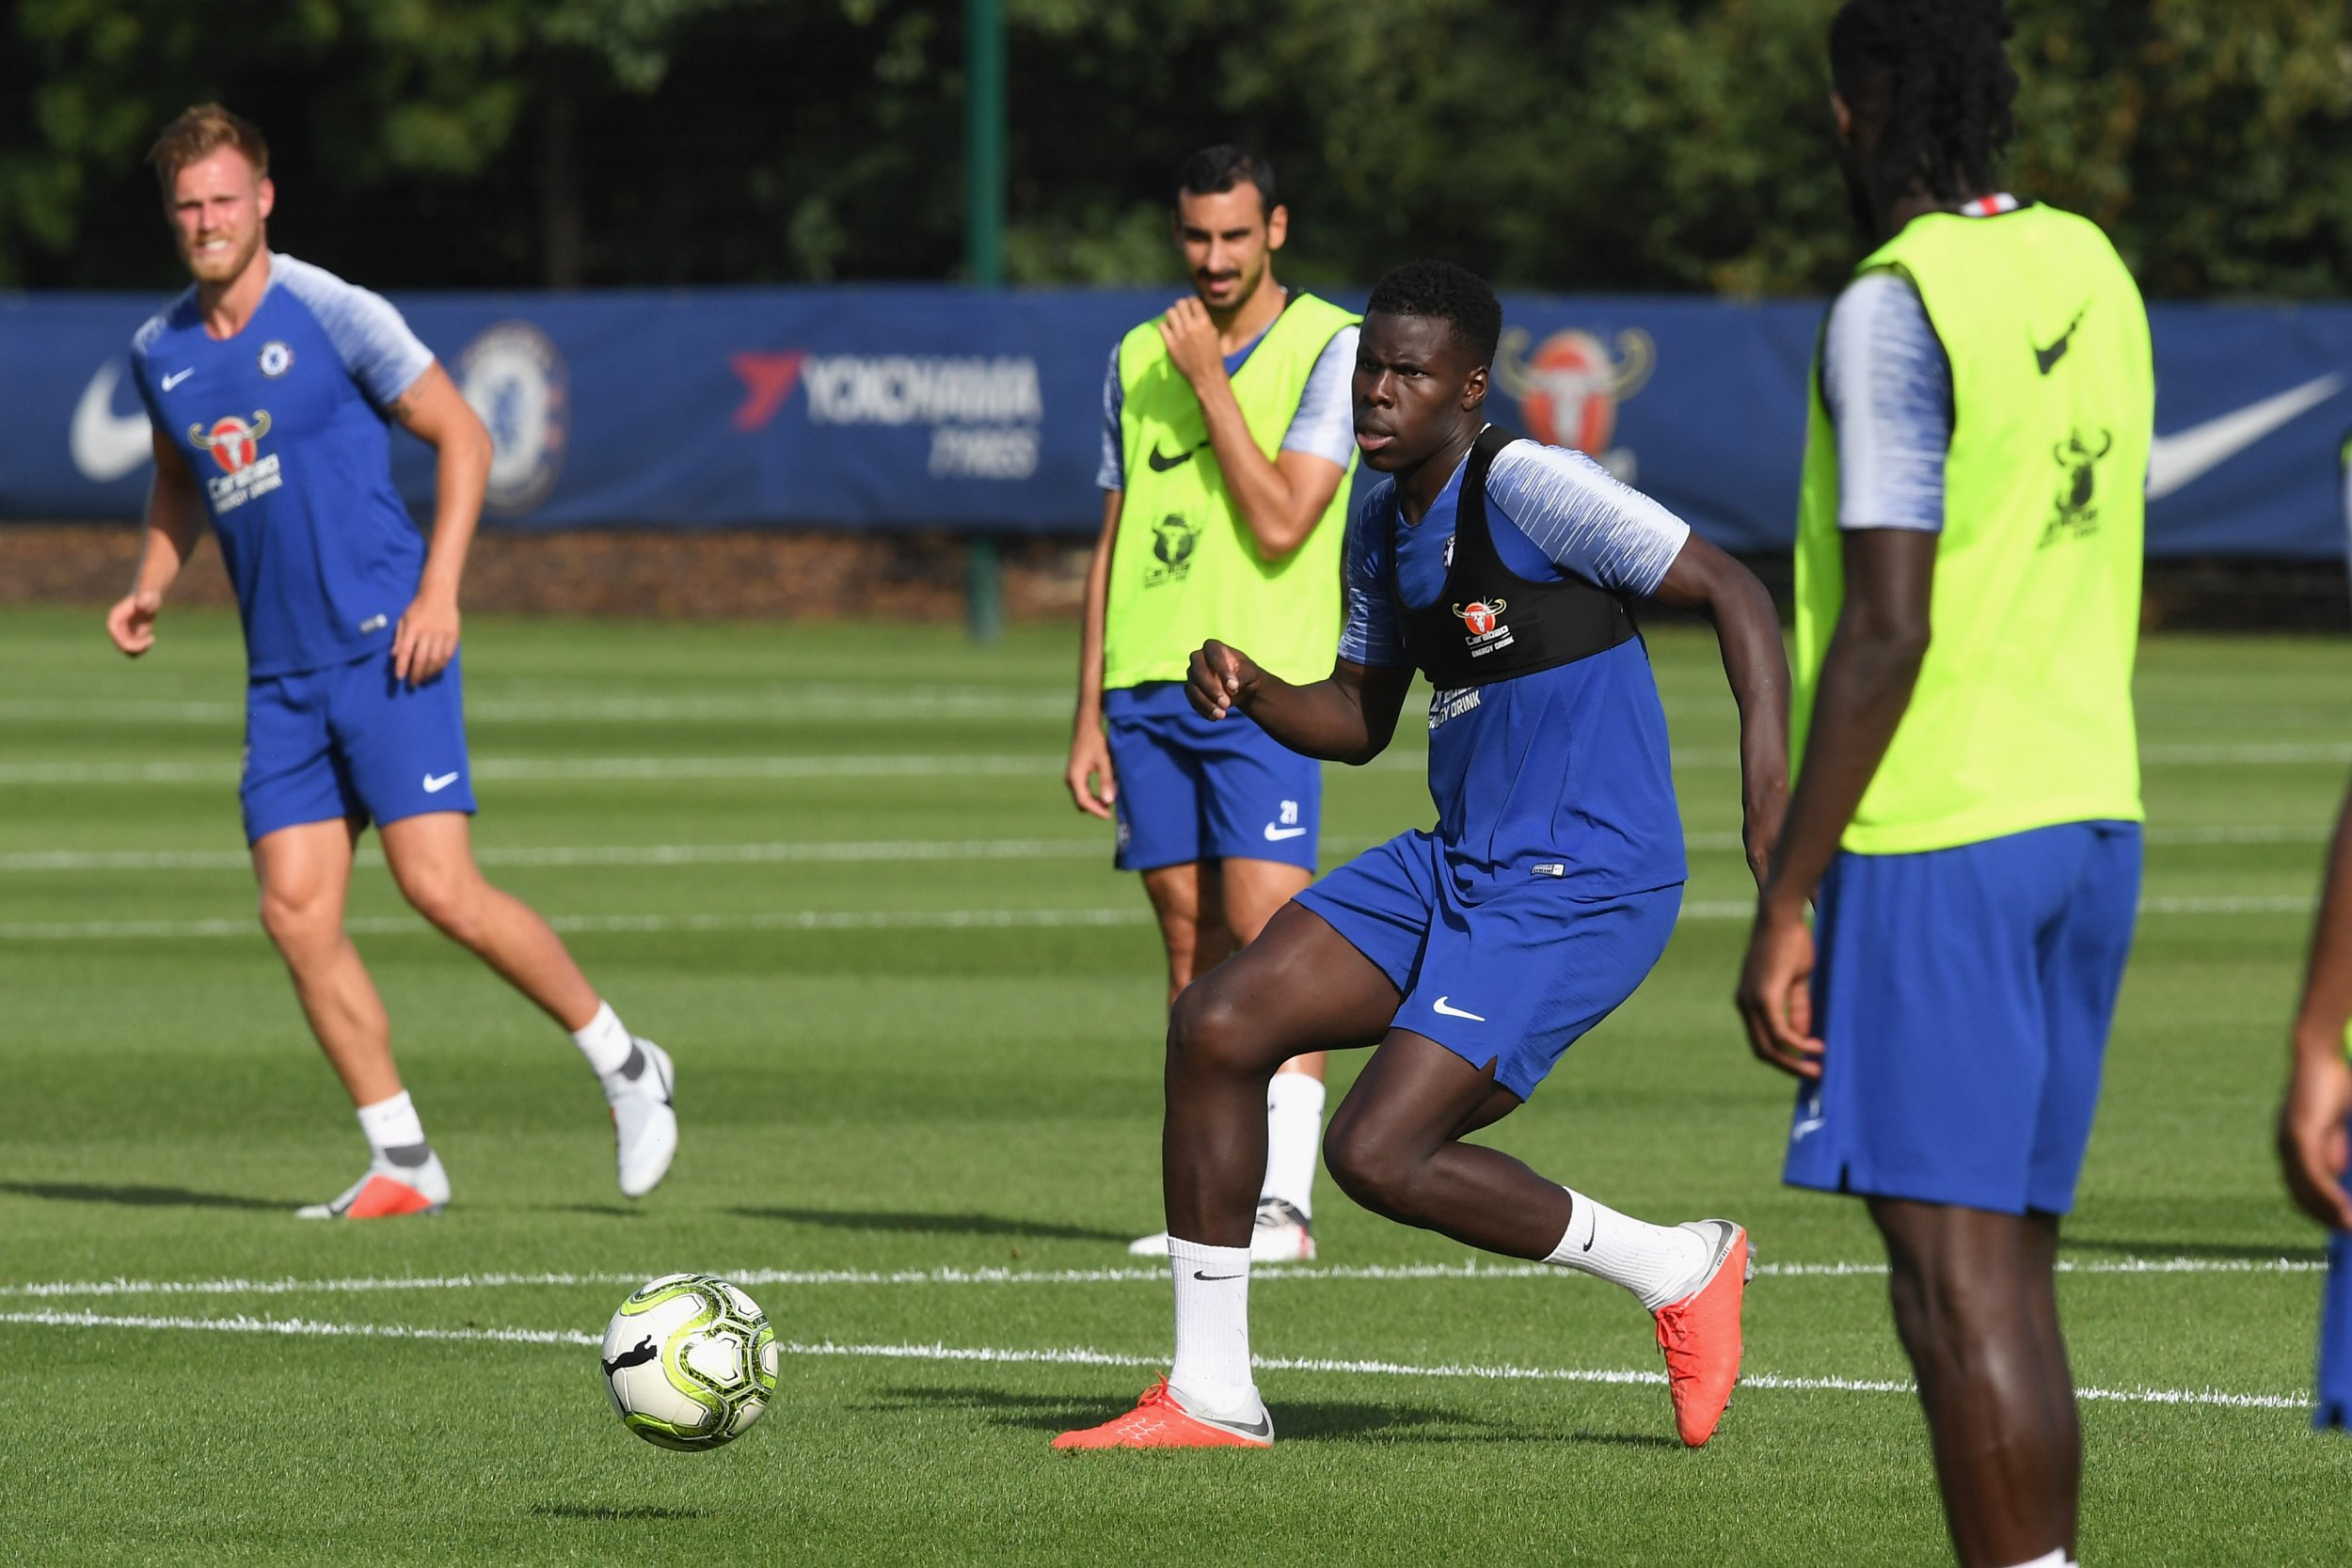 COBHAM, ENGLAND - AUGUST 06: Kurt Zouma of Chelsea during a training session at Chelsea Training Ground on August 6, 2018 in Cobham, England. (Photo by Darren Walsh/Chelsea FC via Getty Images)